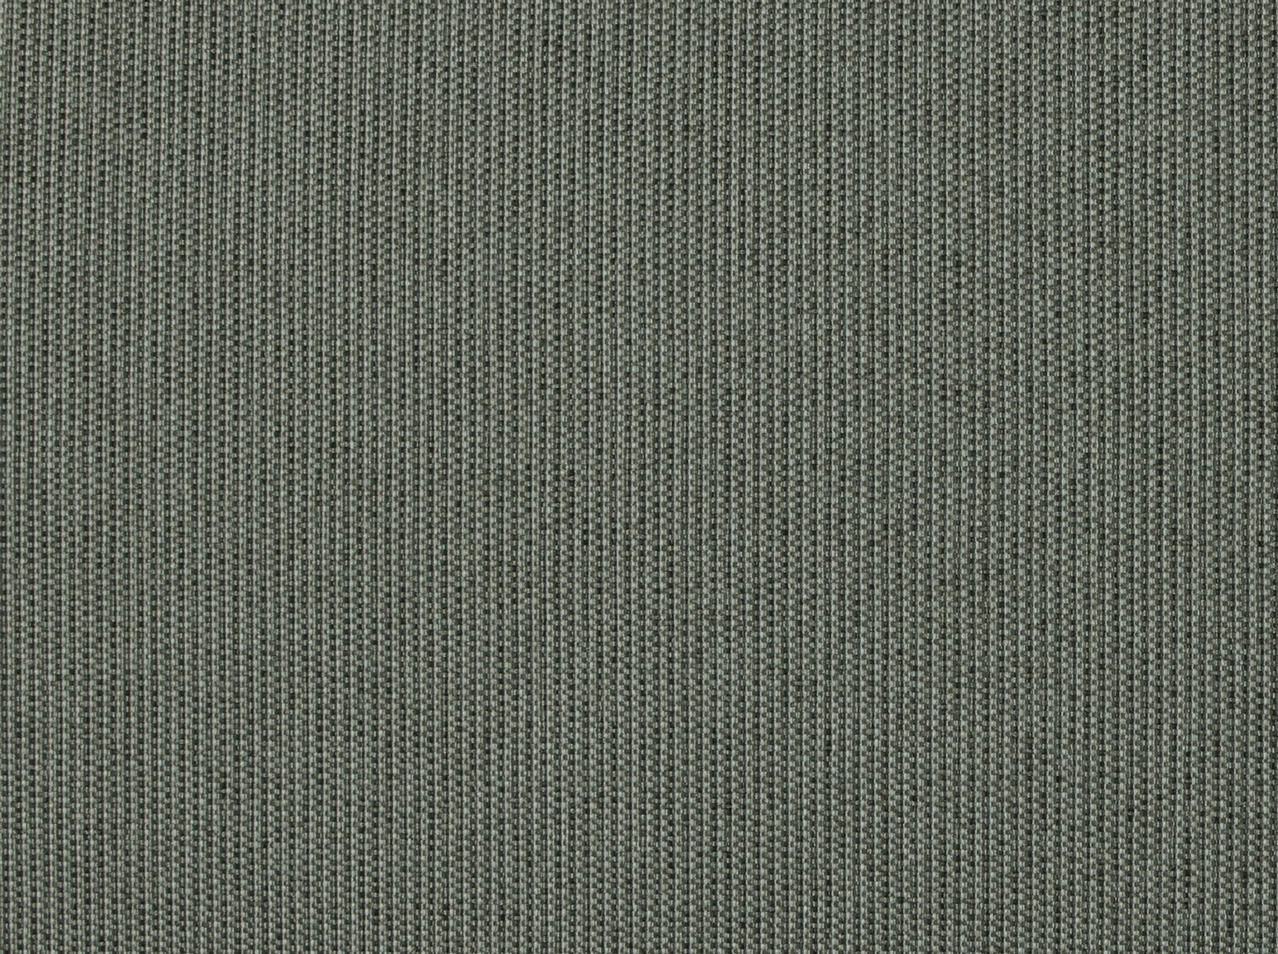 Covington Solids%20and%20Textures Nitro